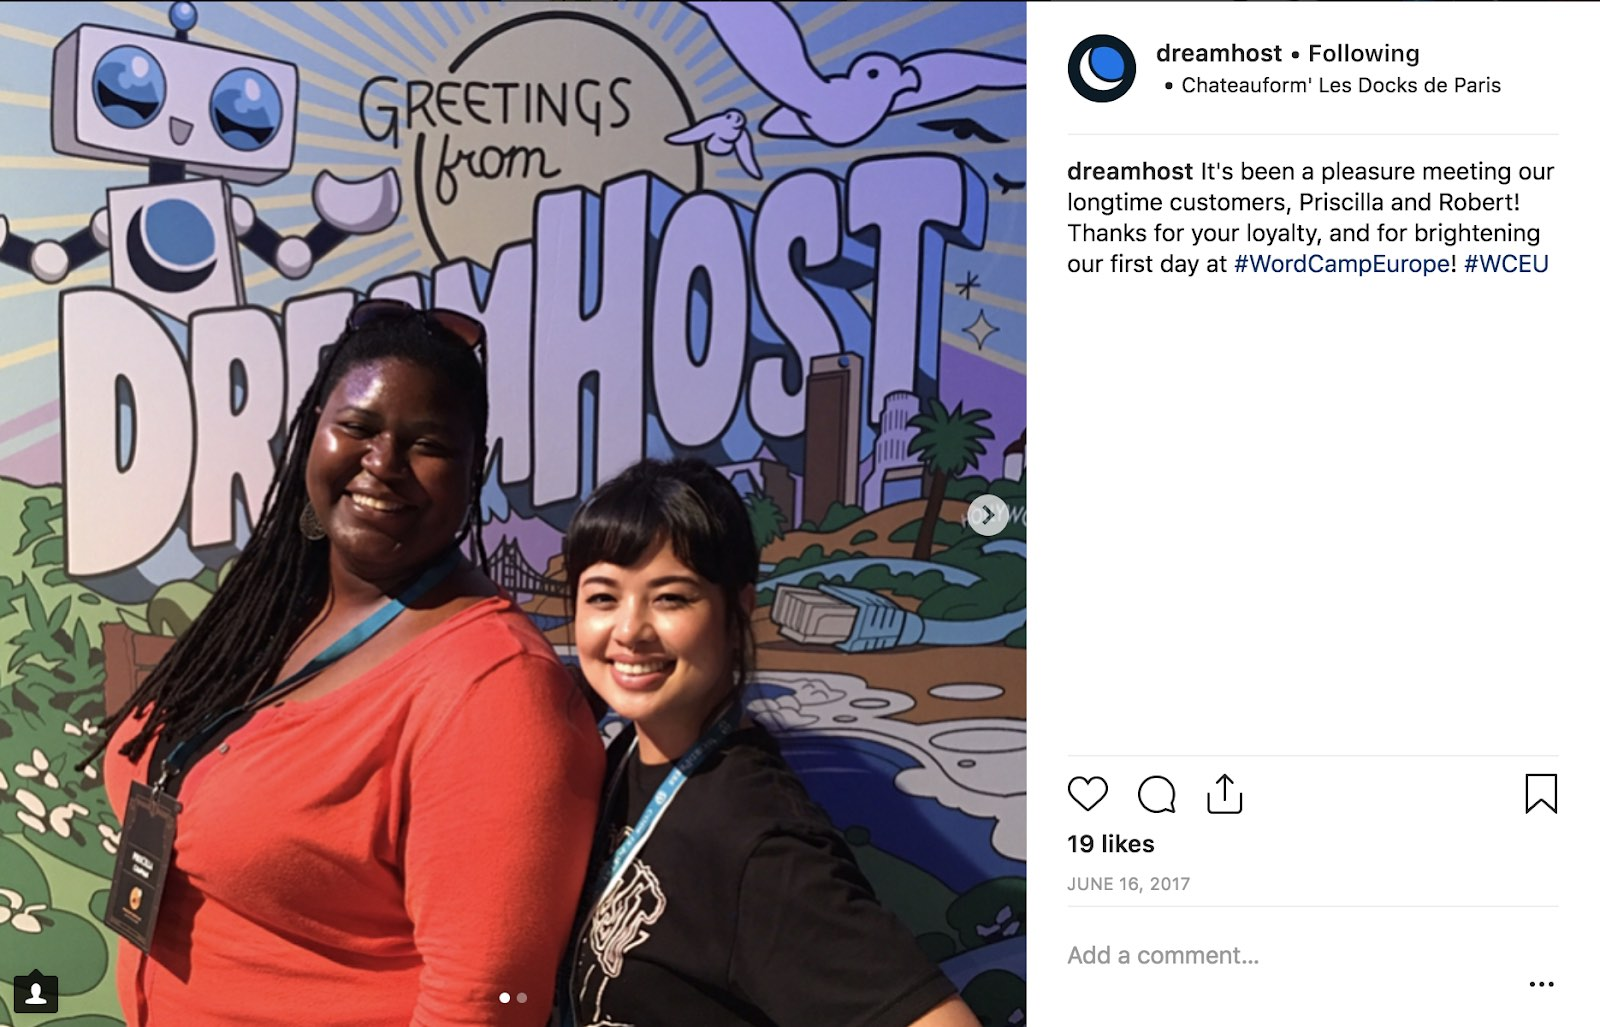 DreamHost post on Instagram.